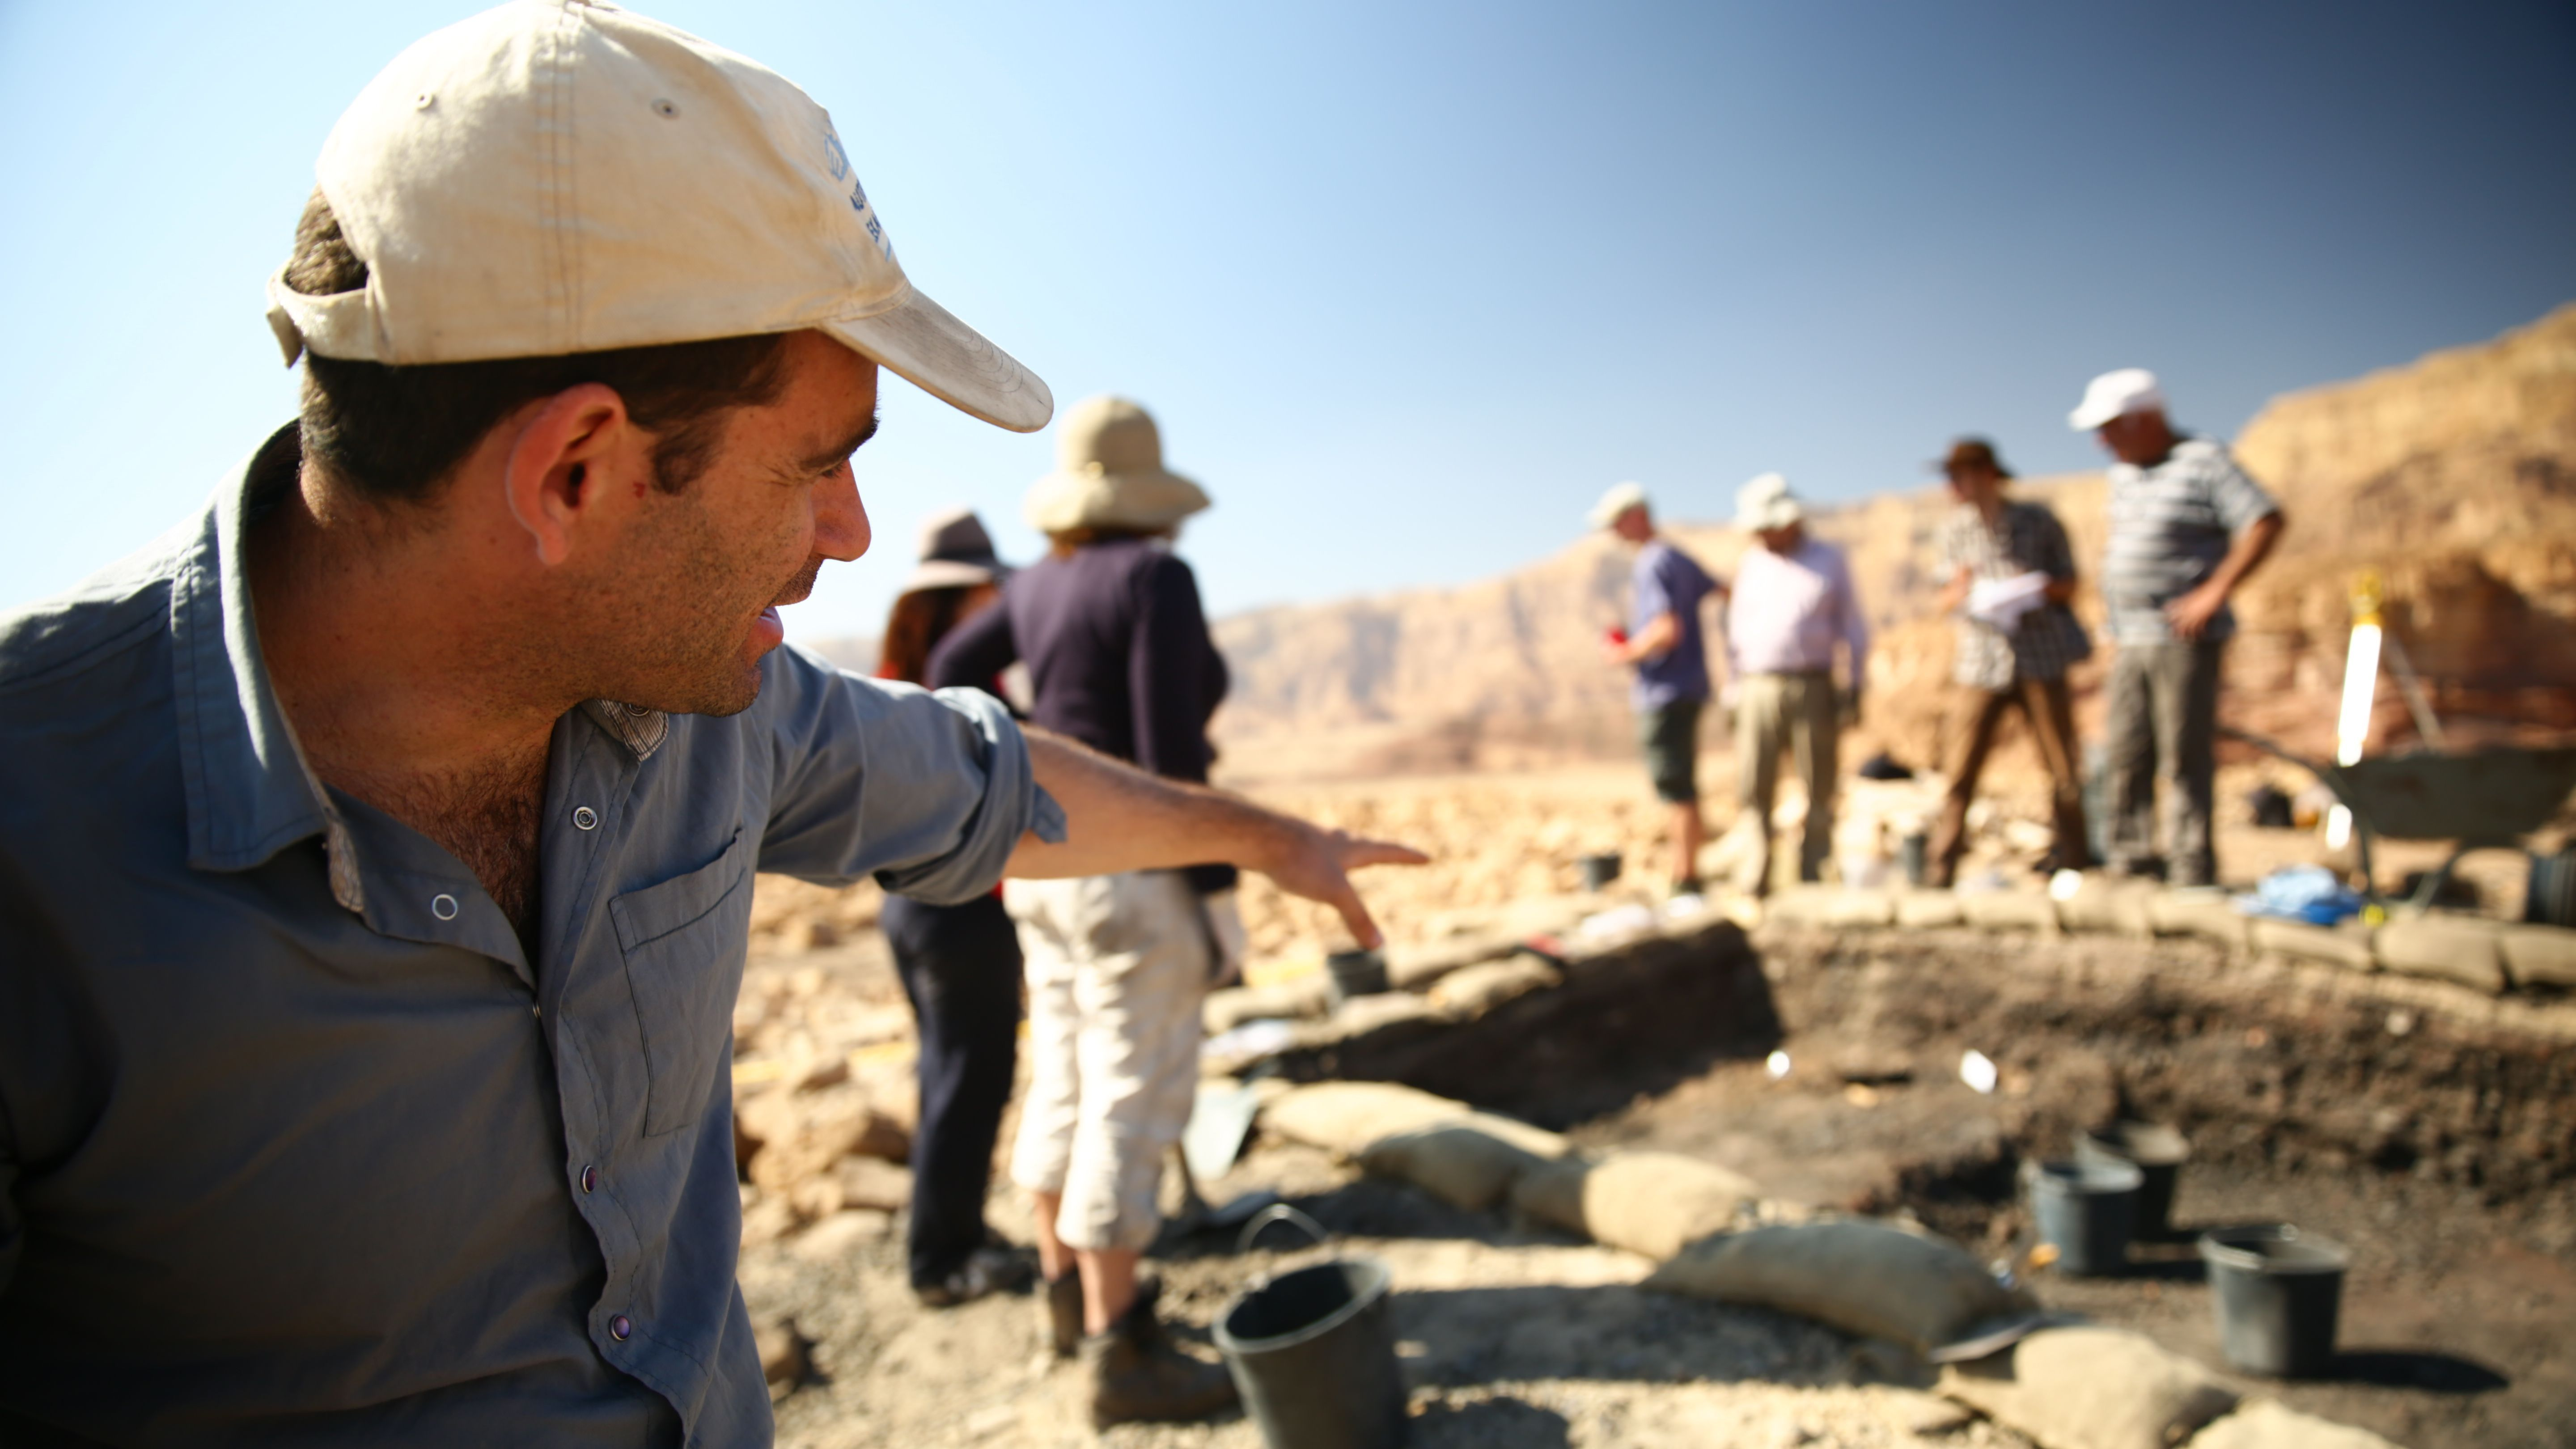 Archaeologists working at the Slaves' Hill site in Timna Valley.